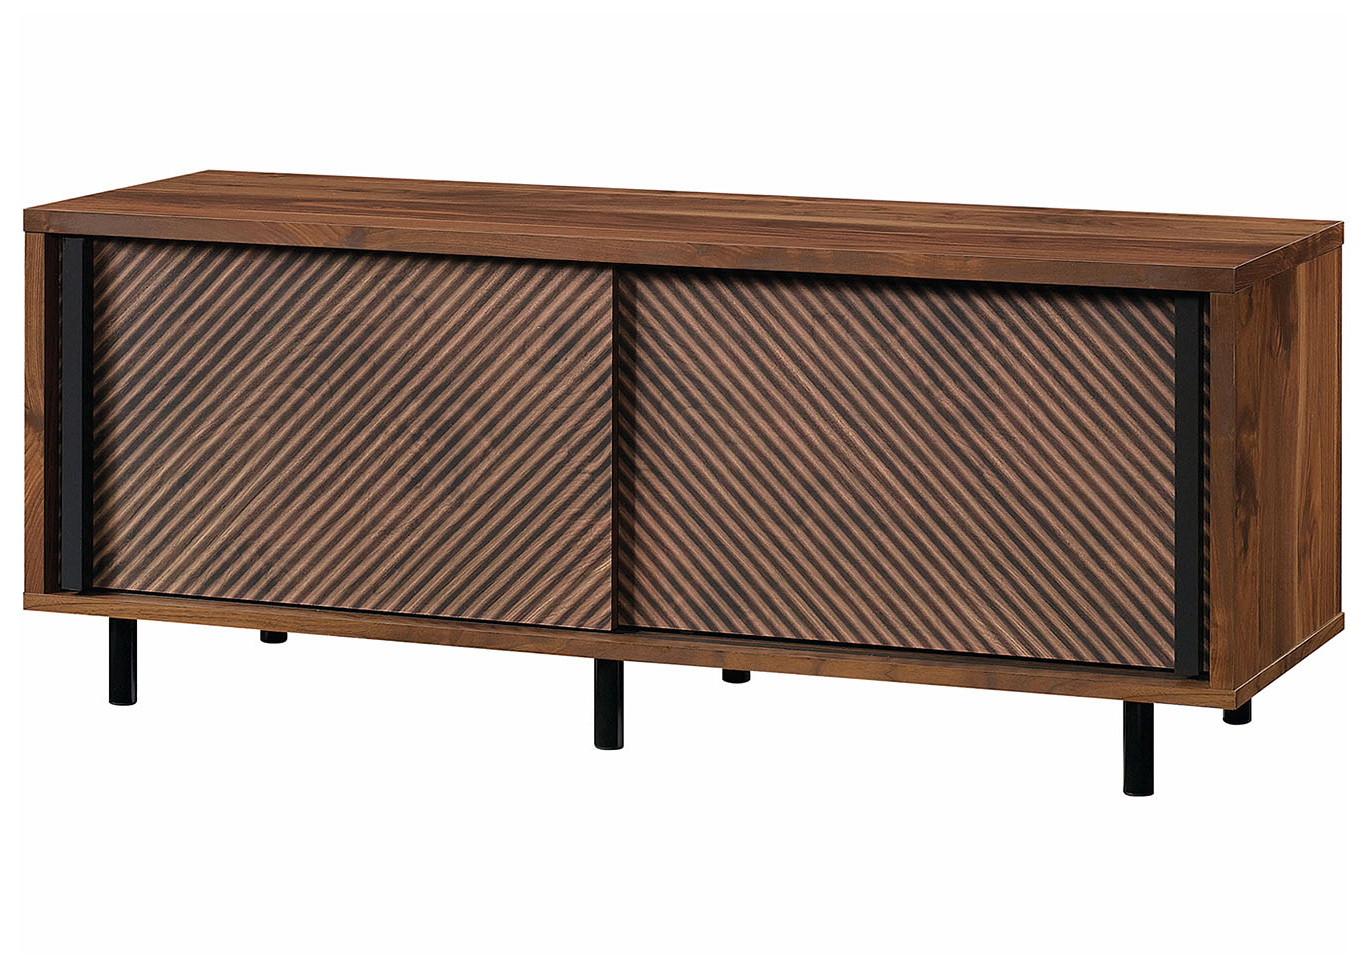 2019 Park Credenzas Intended For Harvey Park Grand Walnut Entertainment Credenza Roses (View 18 of 20)